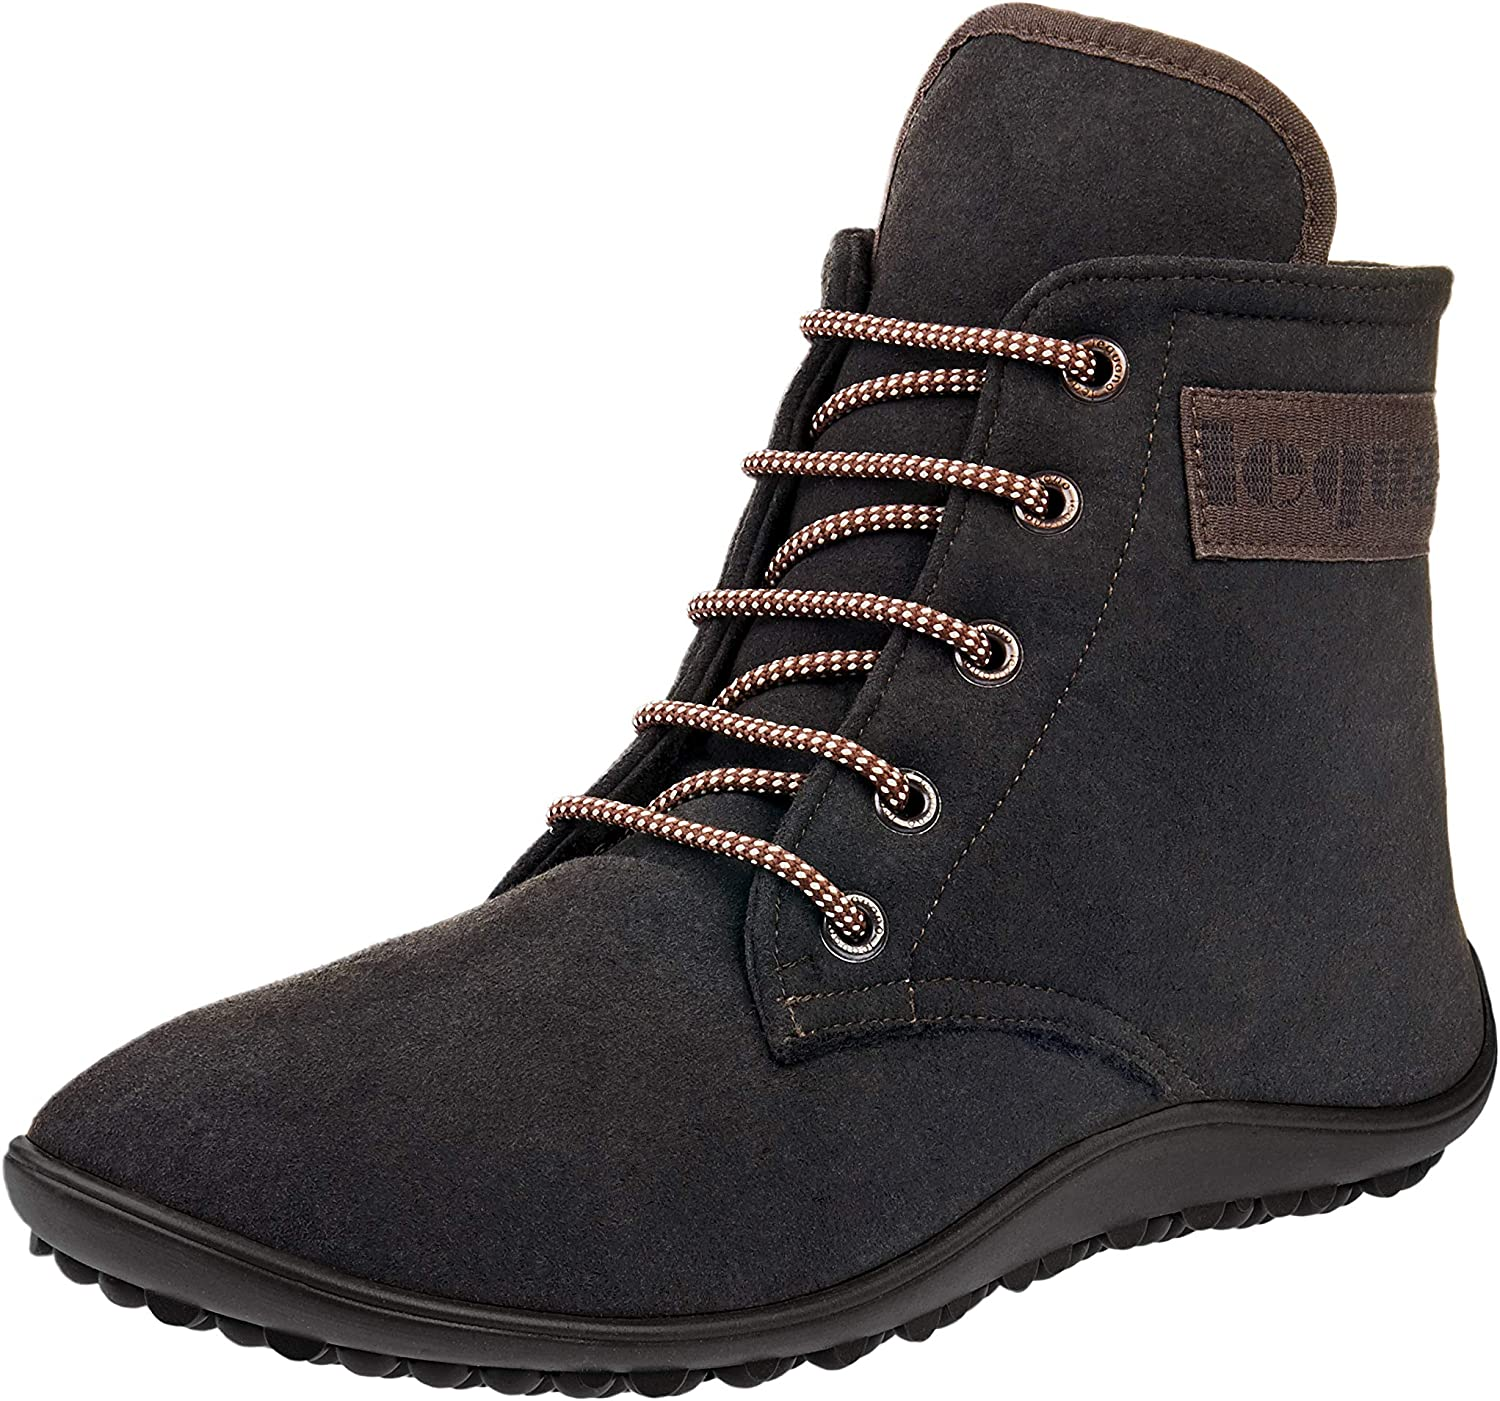 leguano Las Vegas Mall Chester Barefoot Boot Lightweight and Minimal Time sale Flexible